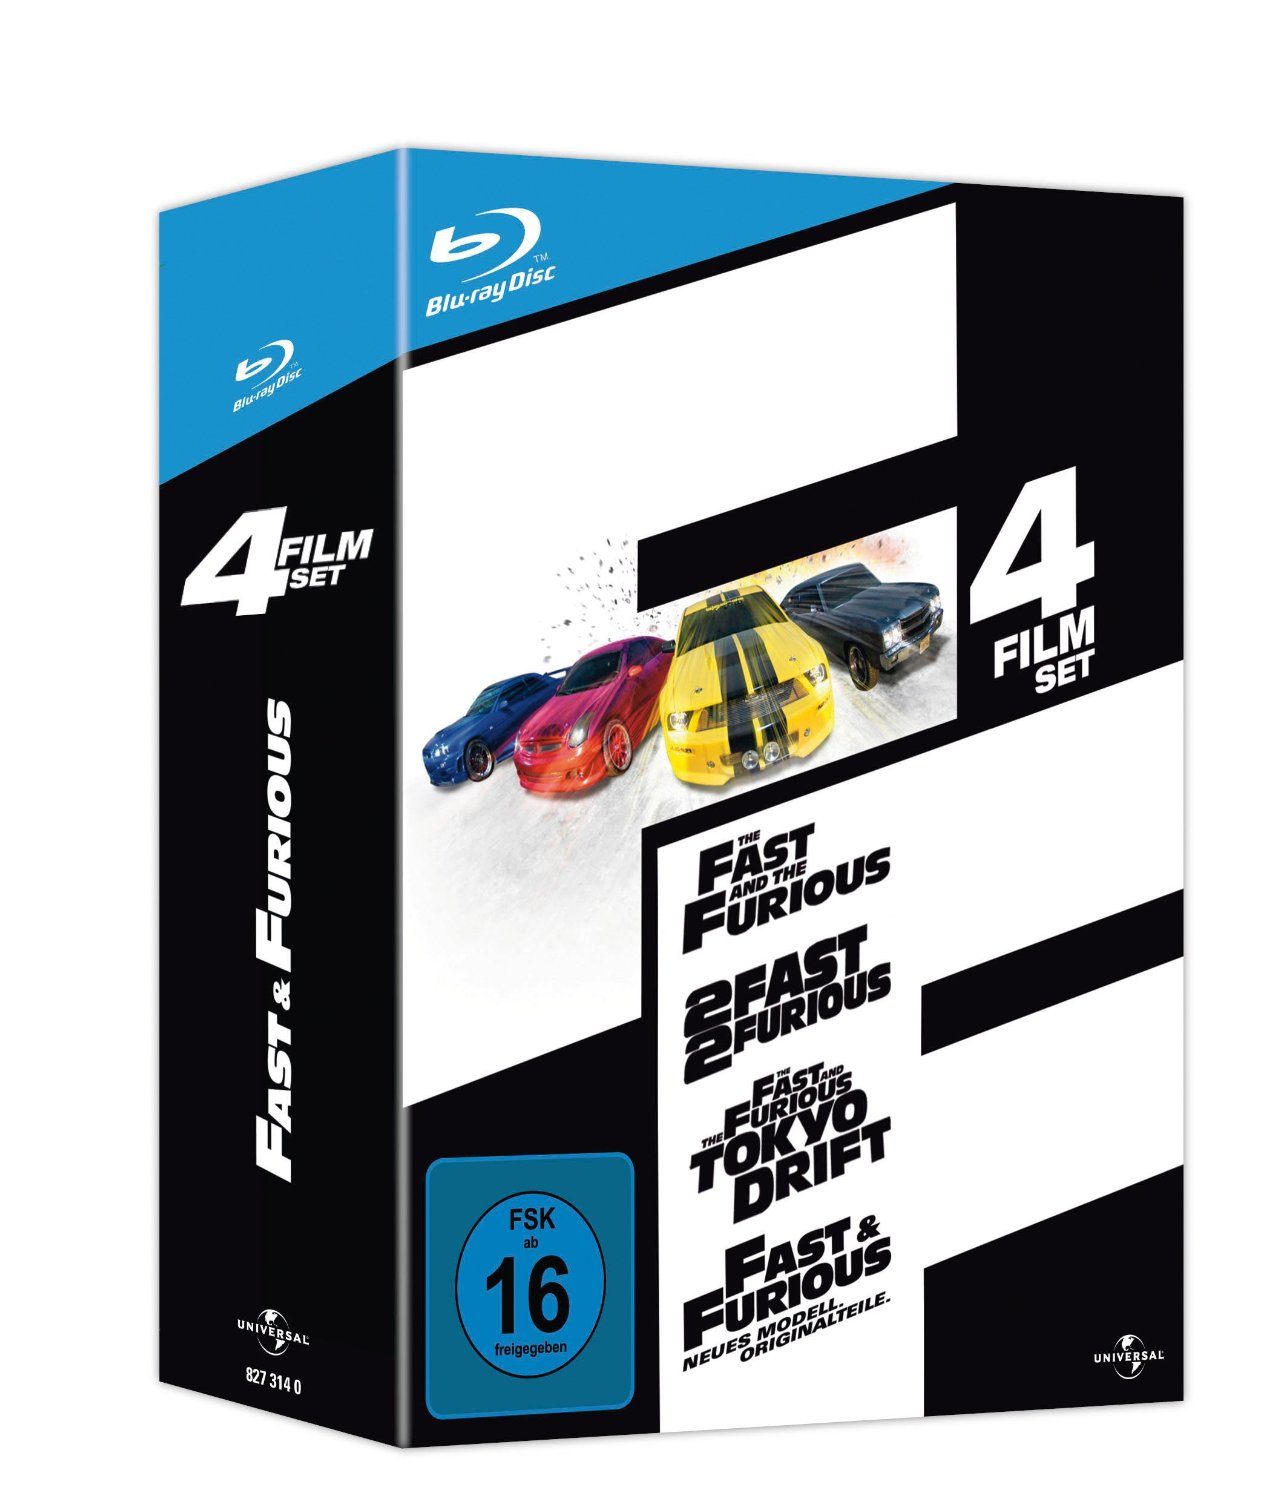 ihr uncut dvd shop fast and furious 1 4 4 discs blu. Black Bedroom Furniture Sets. Home Design Ideas